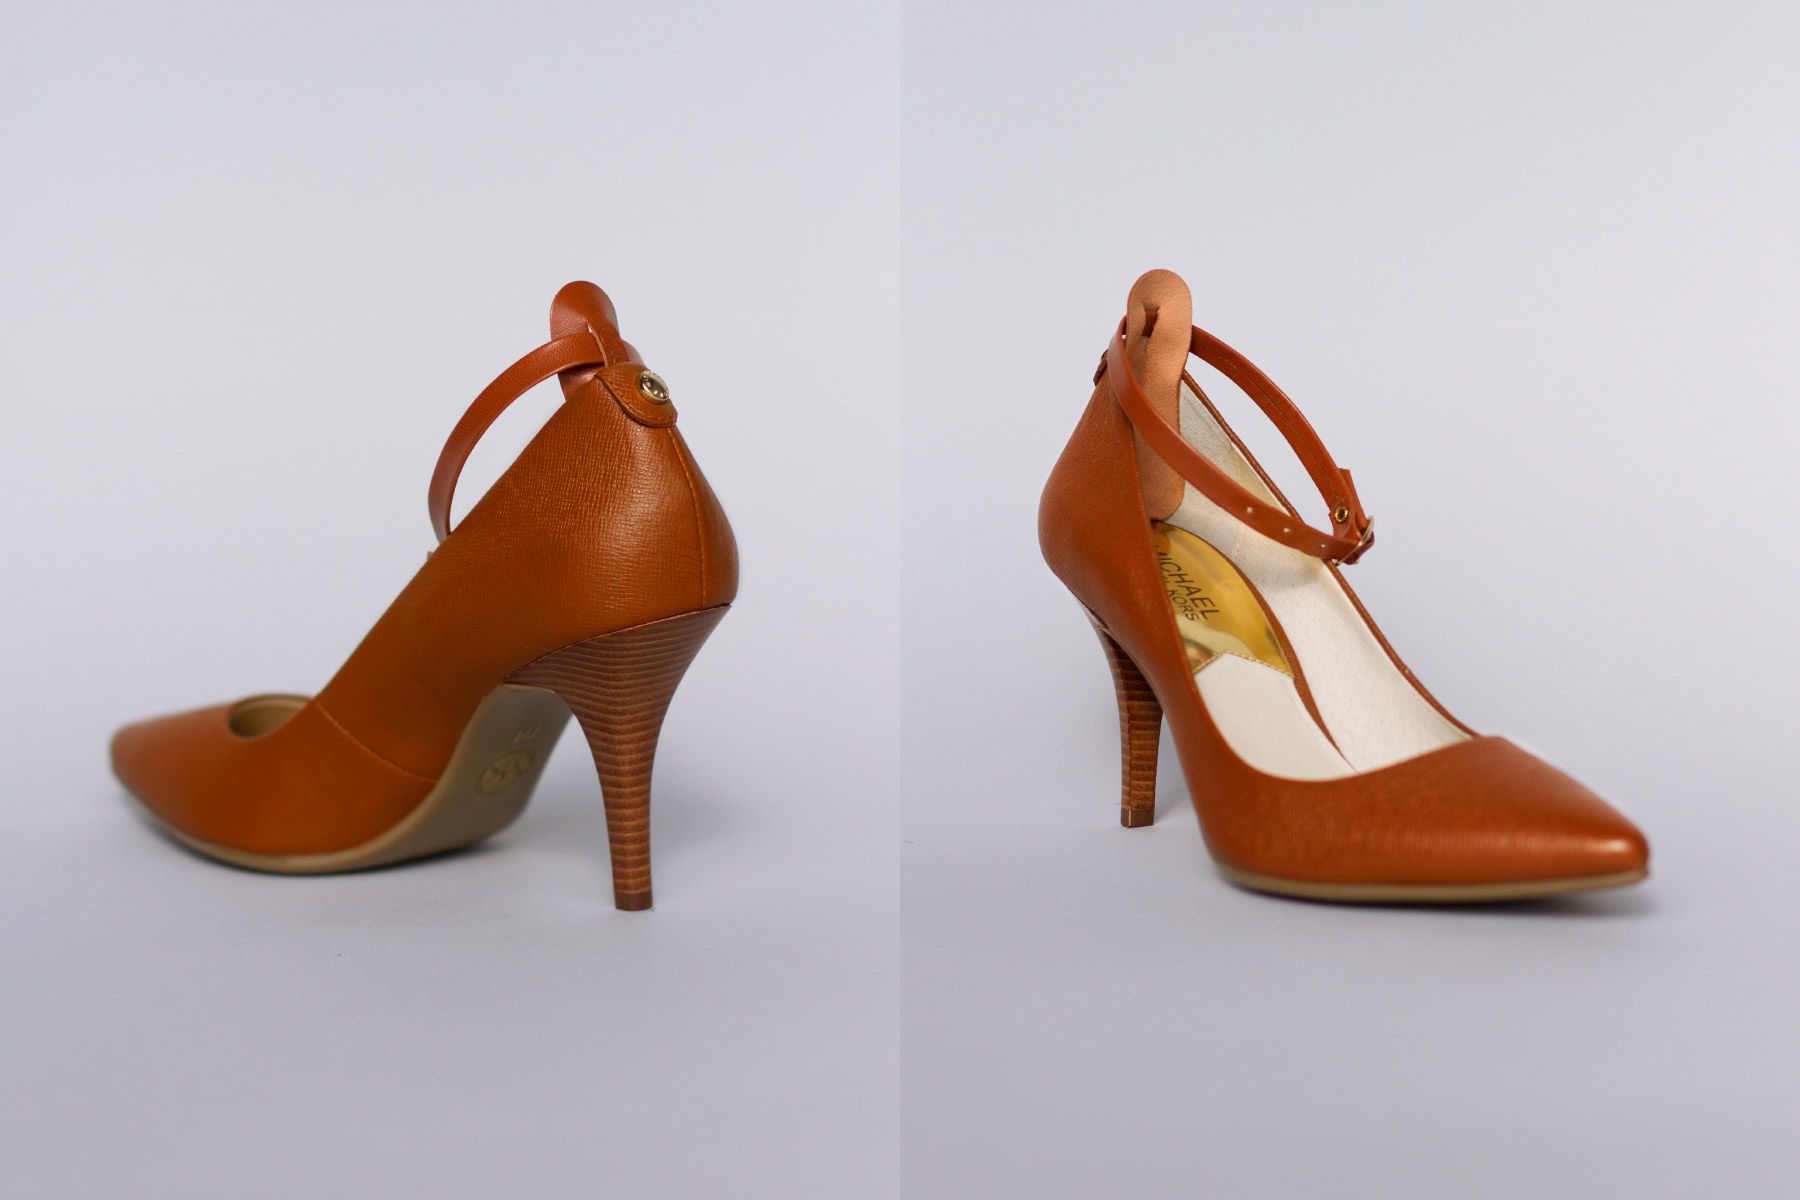 Tan high heels with attachable ankle straps